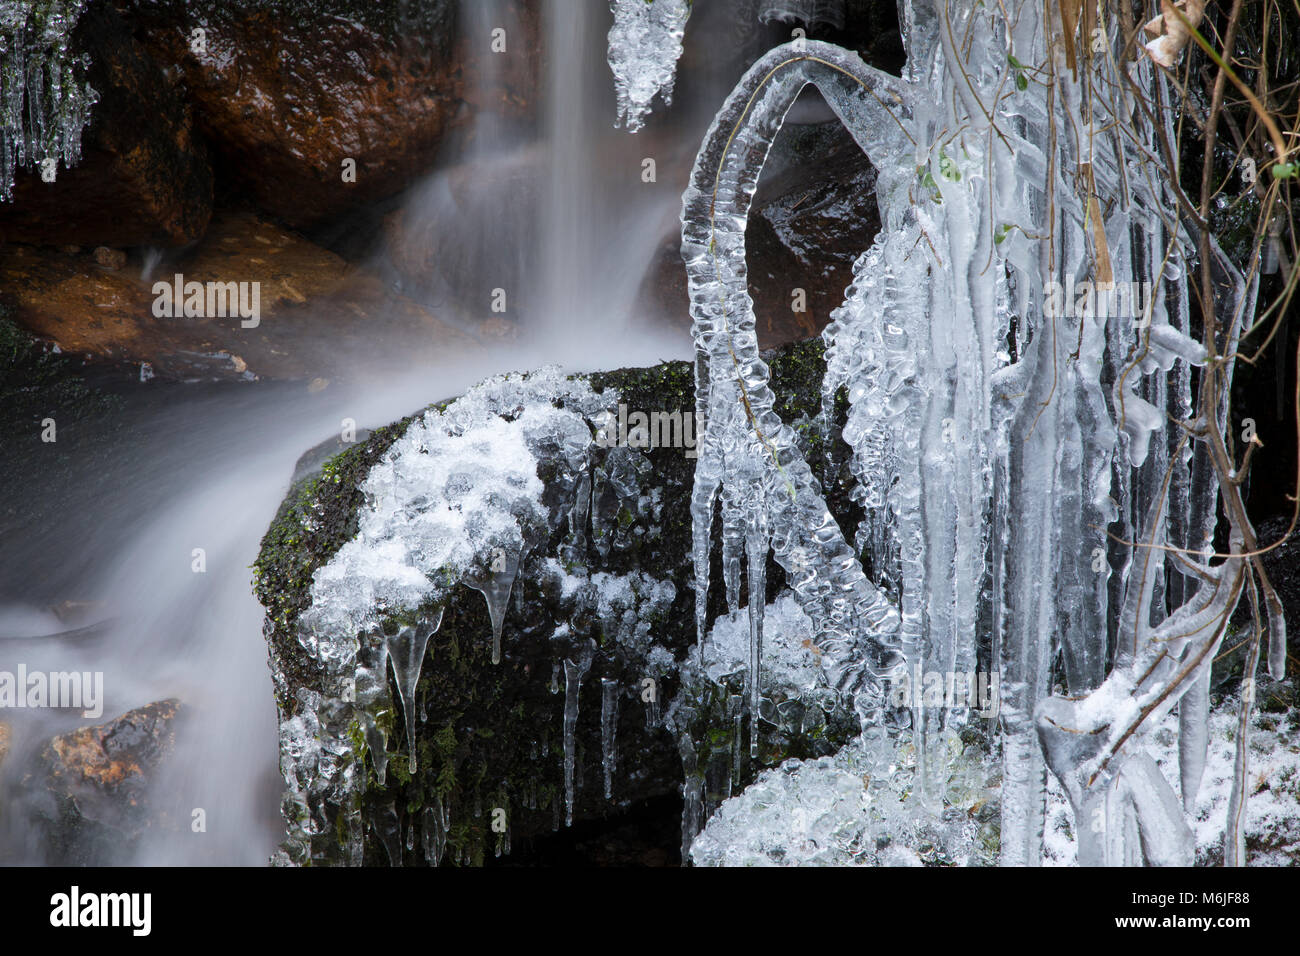 Long Exposure of water flowing down a waterfall with icicles frozen in the foreground, River Erme, Dartmoor, Devon. - Stock Image